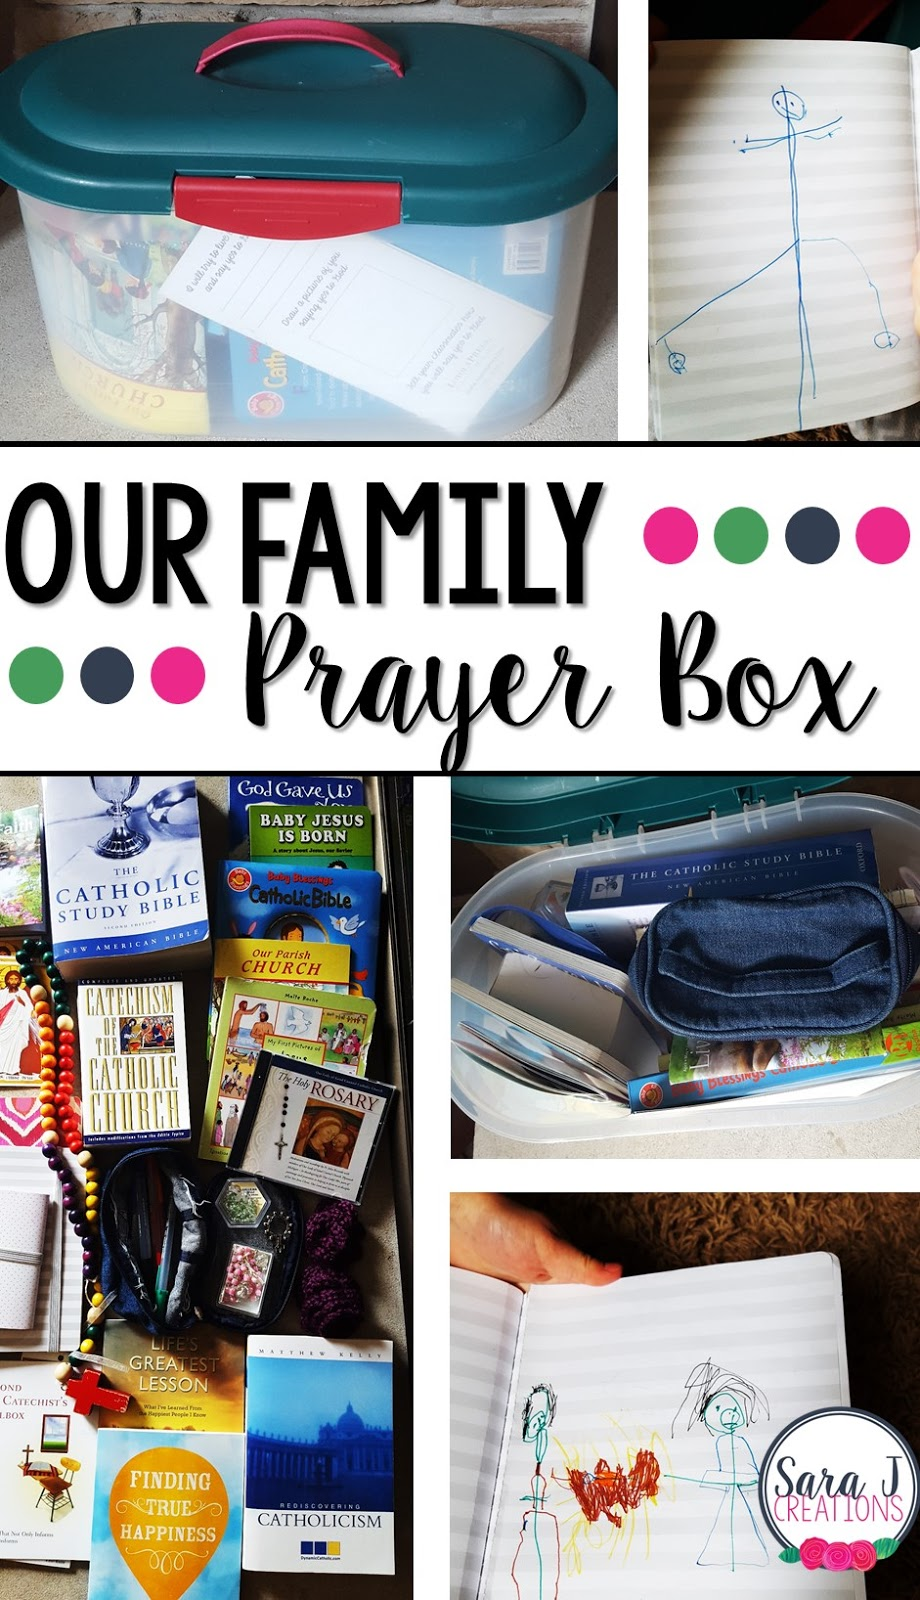 Do you want to know how to make a family prayer box?  Creating a family prayer box was a simple no cost way to shift our prayer life to include our girls.  There are some great ideas for what to include so that every member of the family is included.